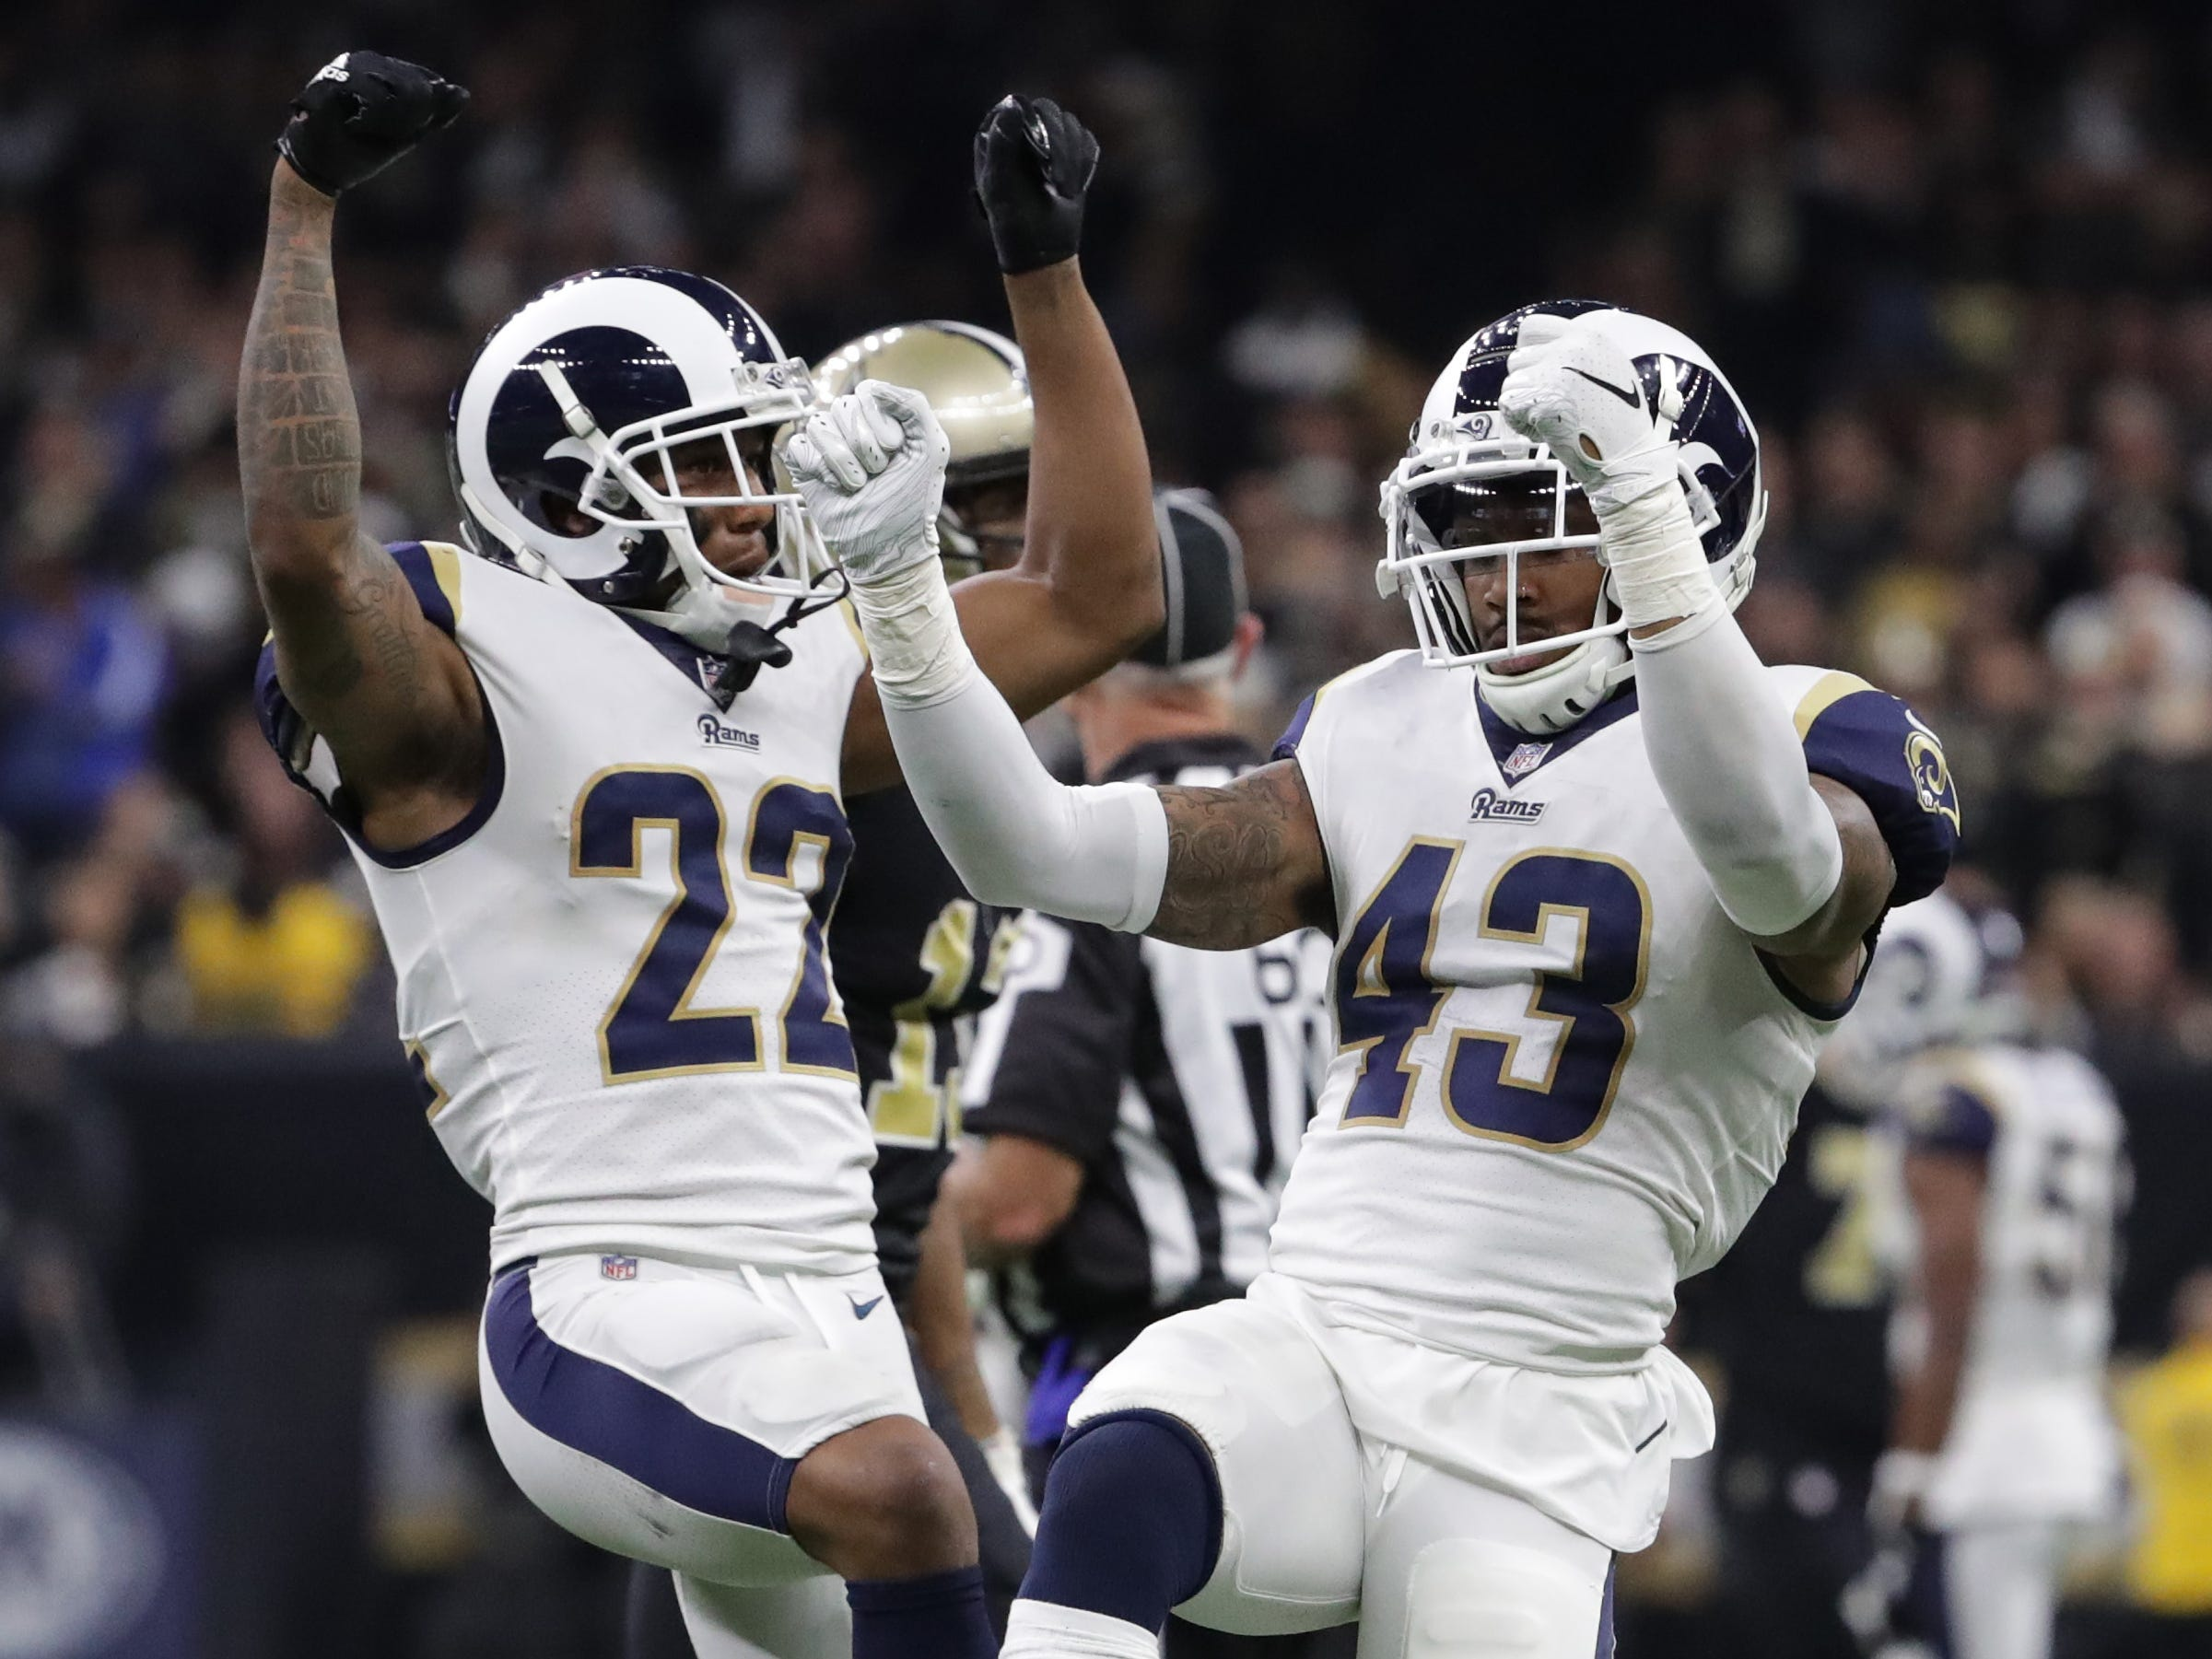 Los Angeles Rams cornerback Marcus Peters (22) and strong safety John Johnson (43) celebrate an interception during overtime in the NFC Championship at Mercedes-Benz Superdome.